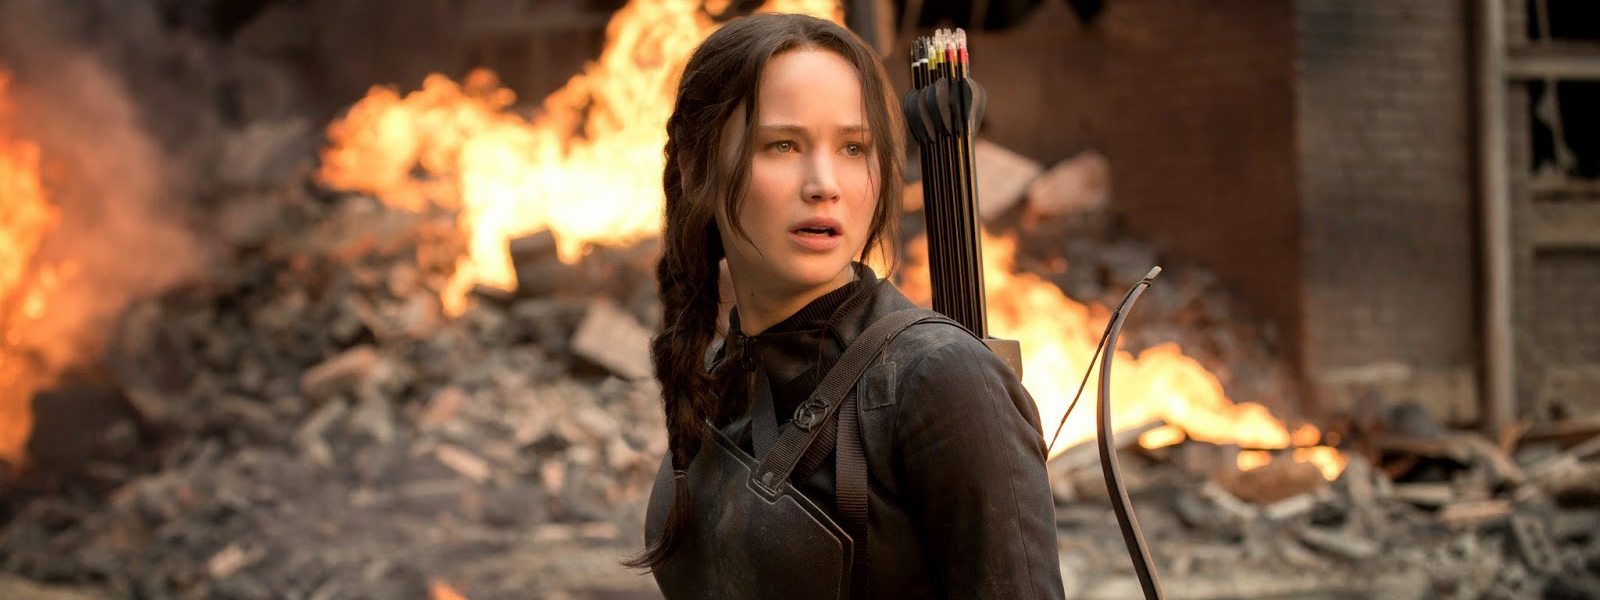 The Hanging Tree – The Hunger Games